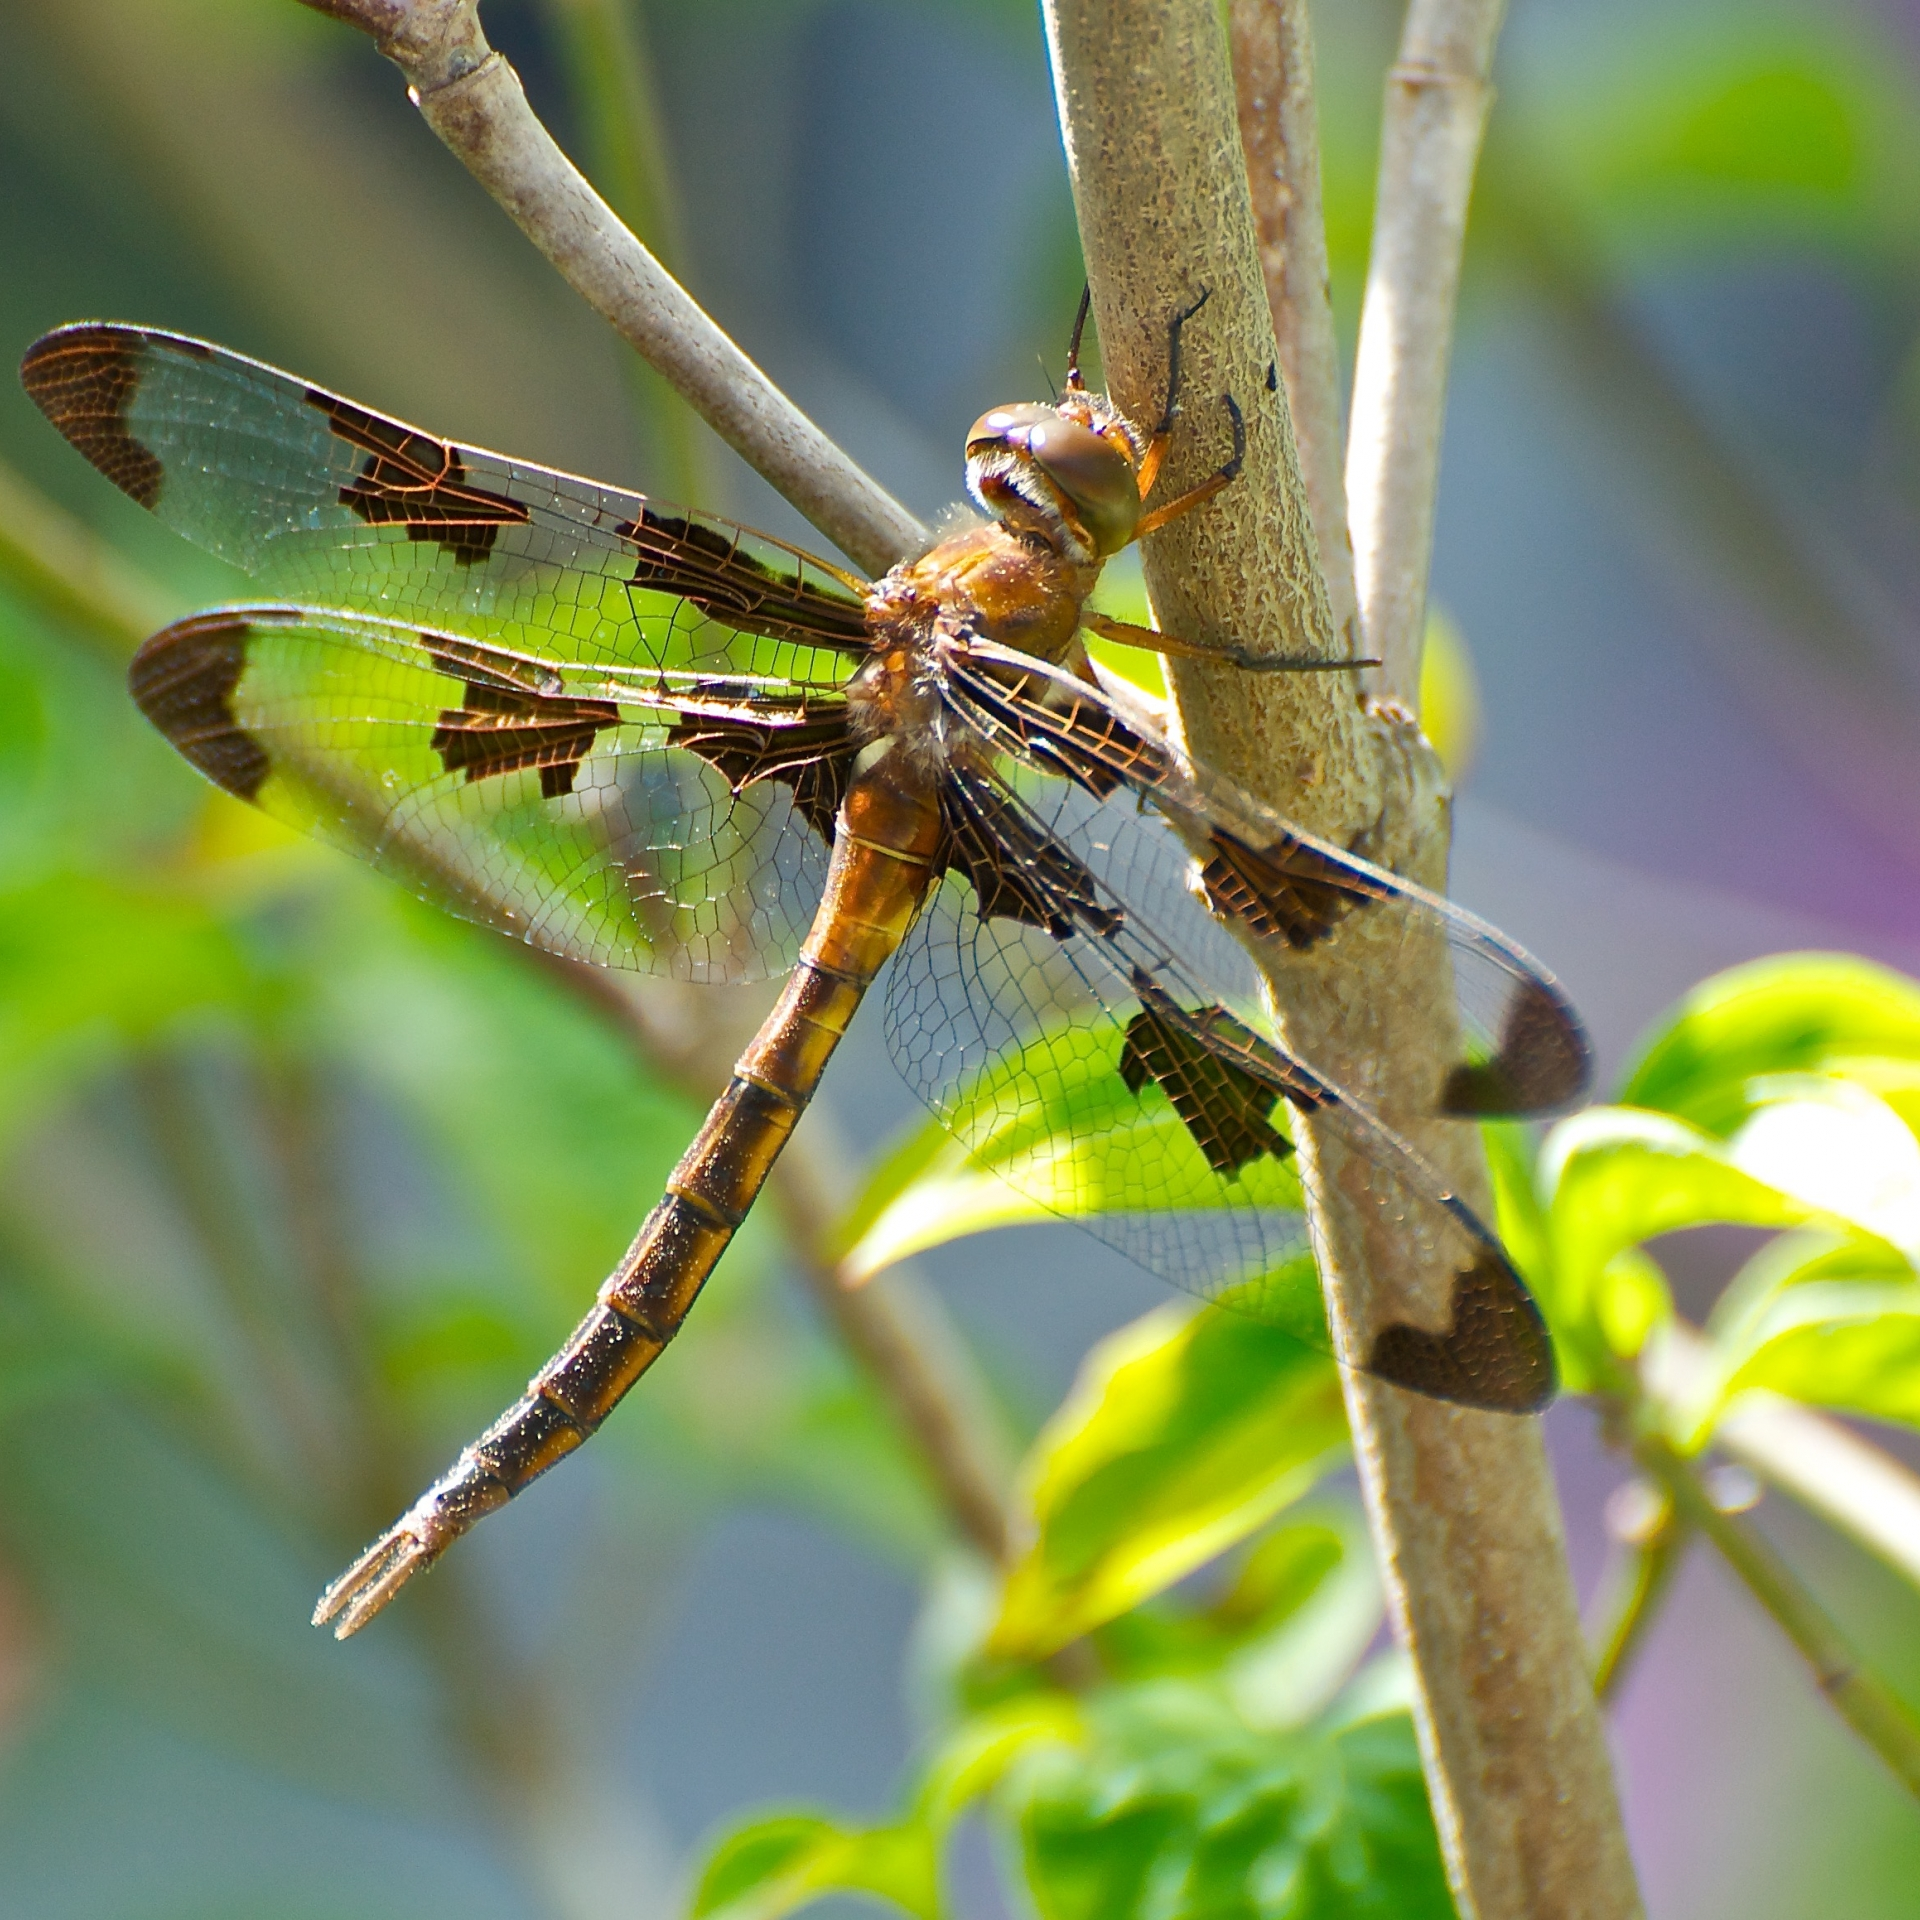 Dragonfly perched on a native dogwood tree.